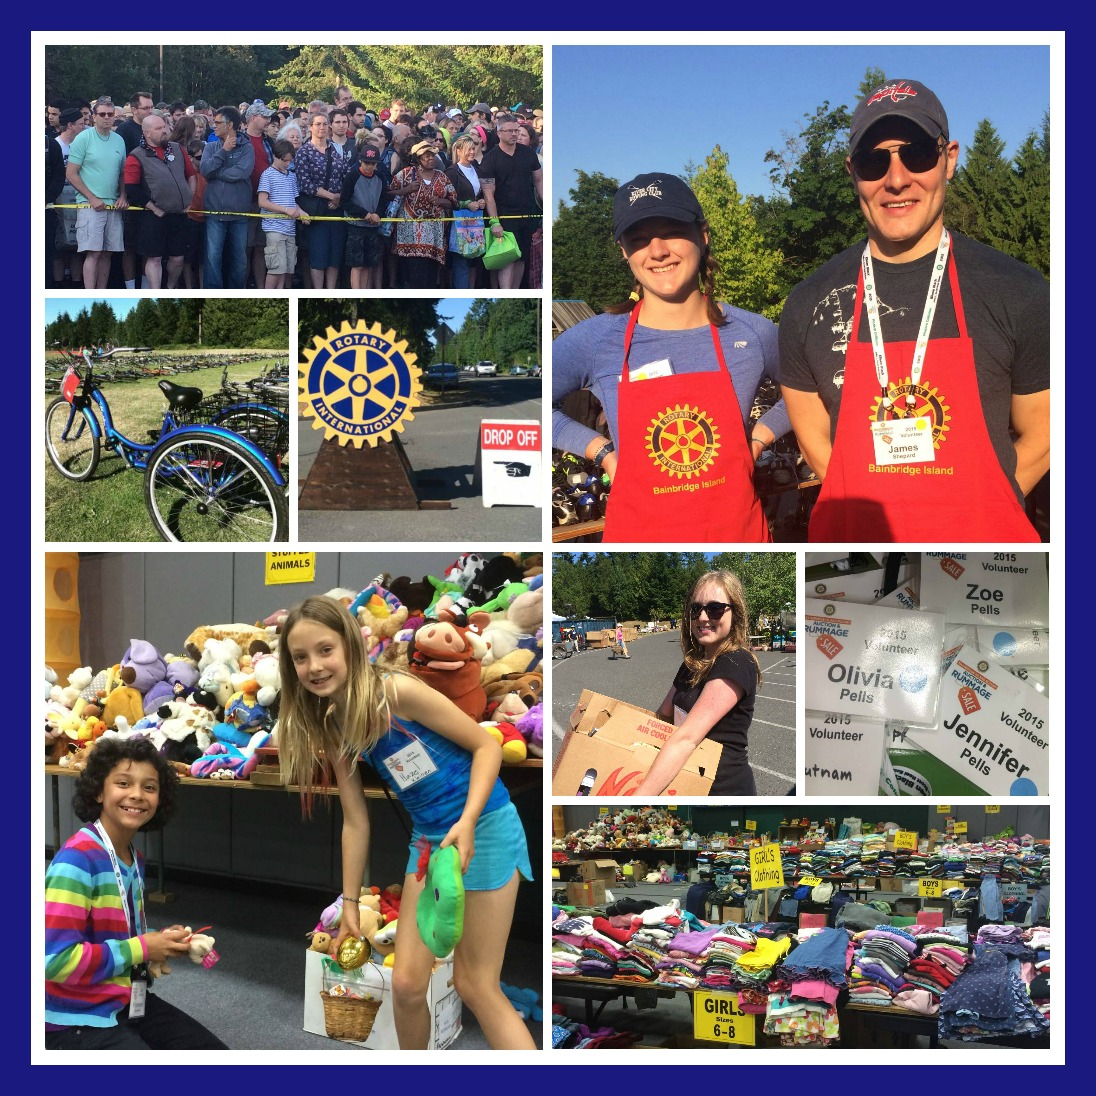 ROTARY 2015 collage by Jen Pells Realtor Bainbridge